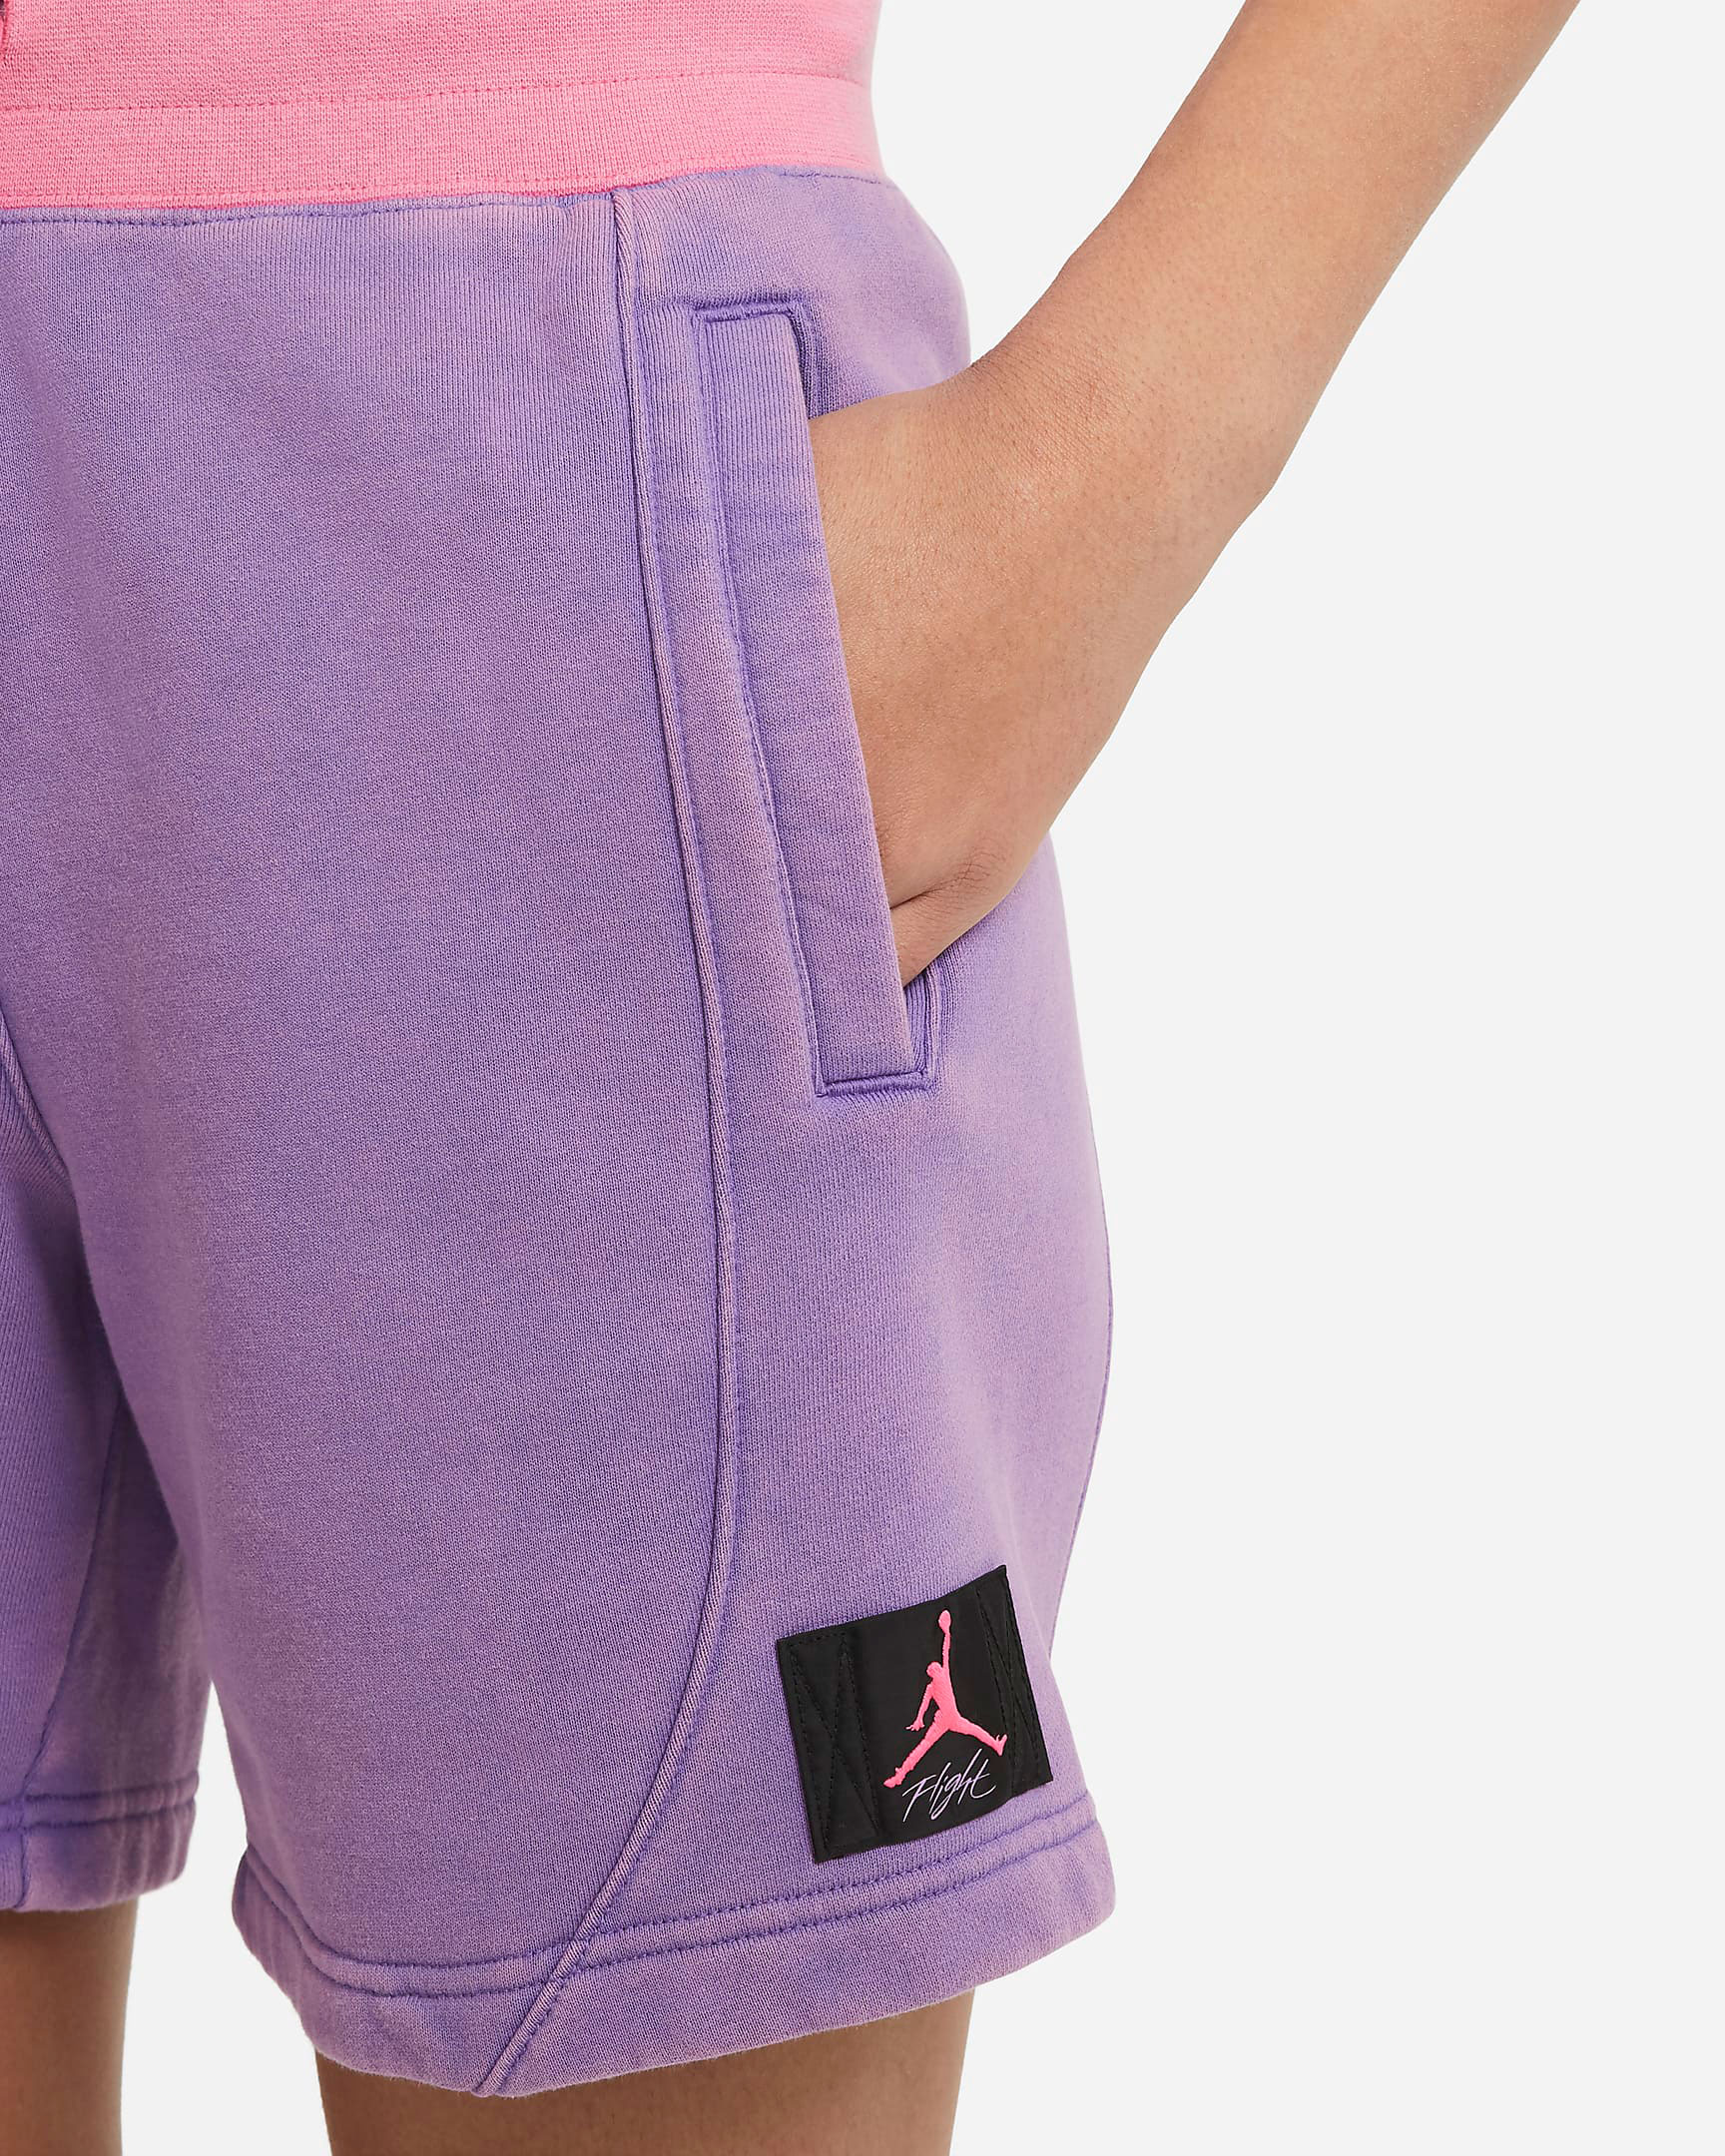 jordan-flight-womens-shorts-purple-pink-2